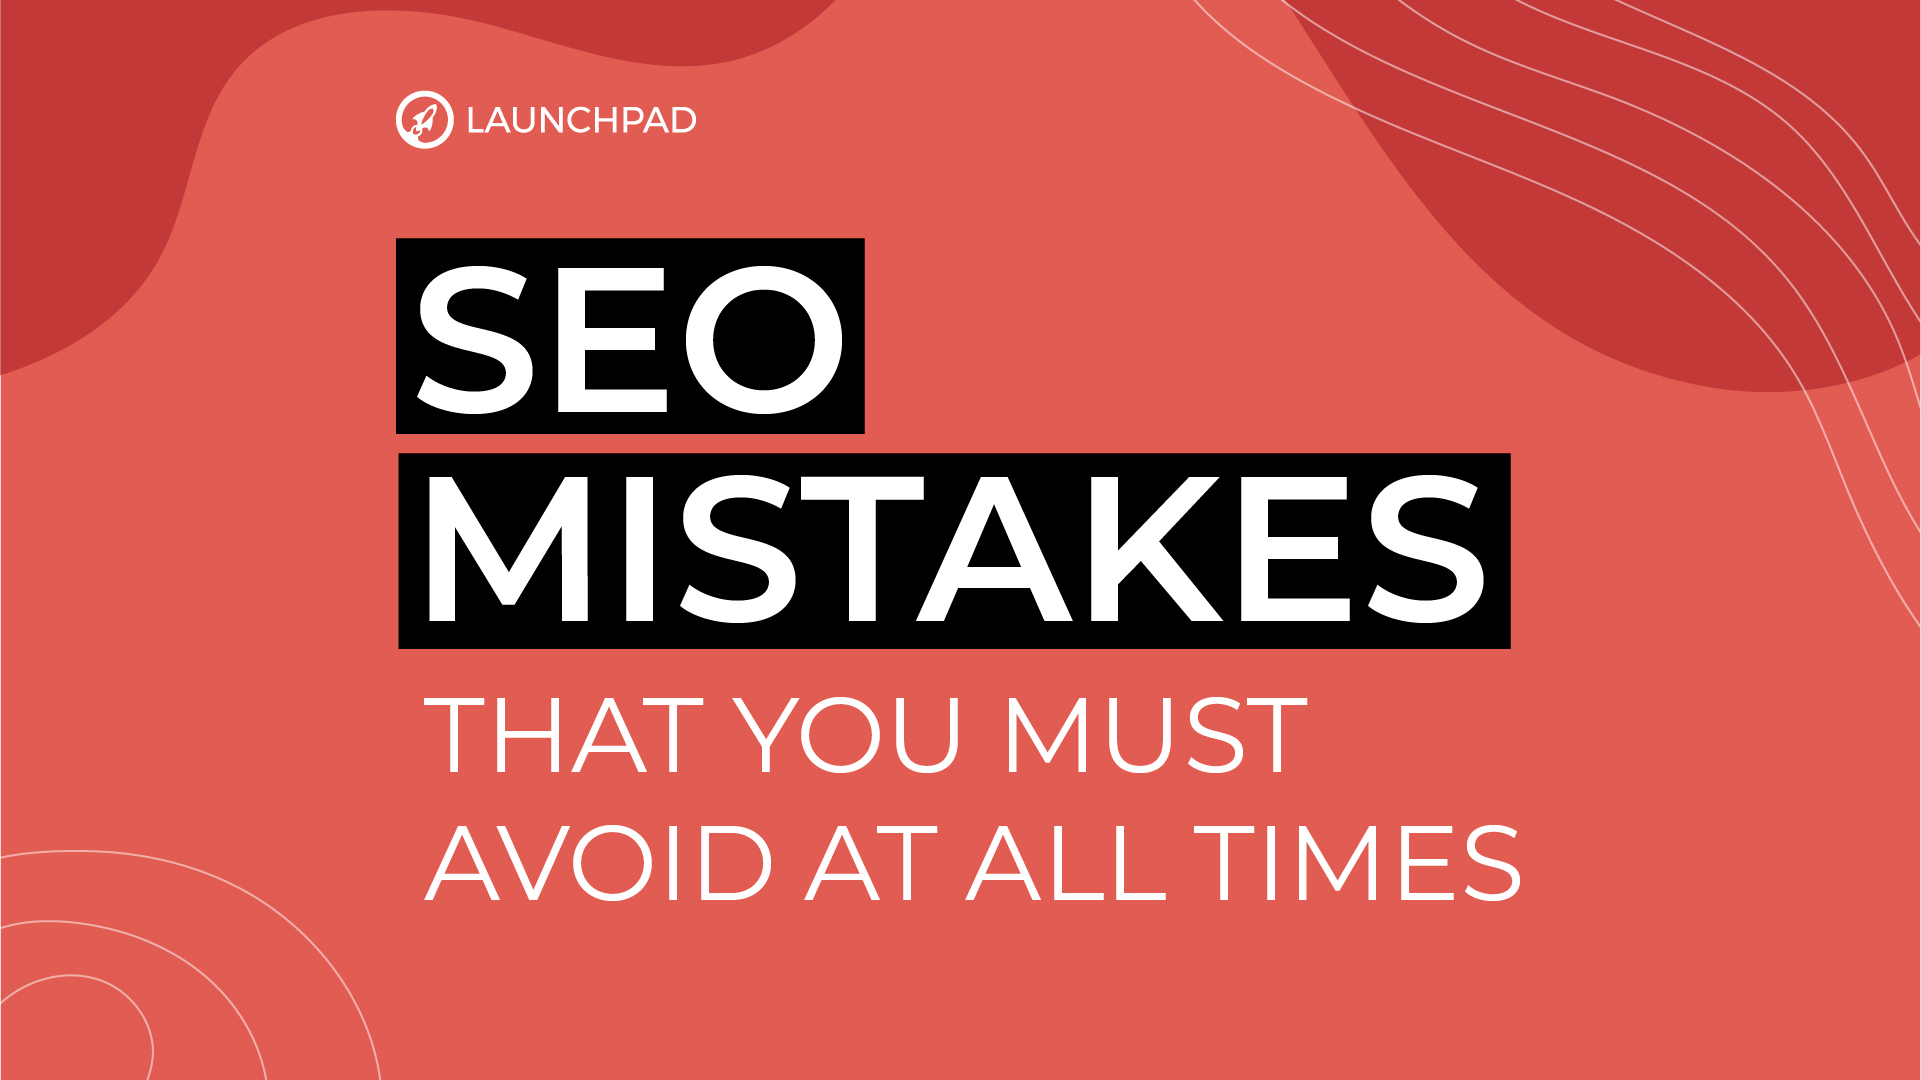 SEO mistakes that you must avoid at all times